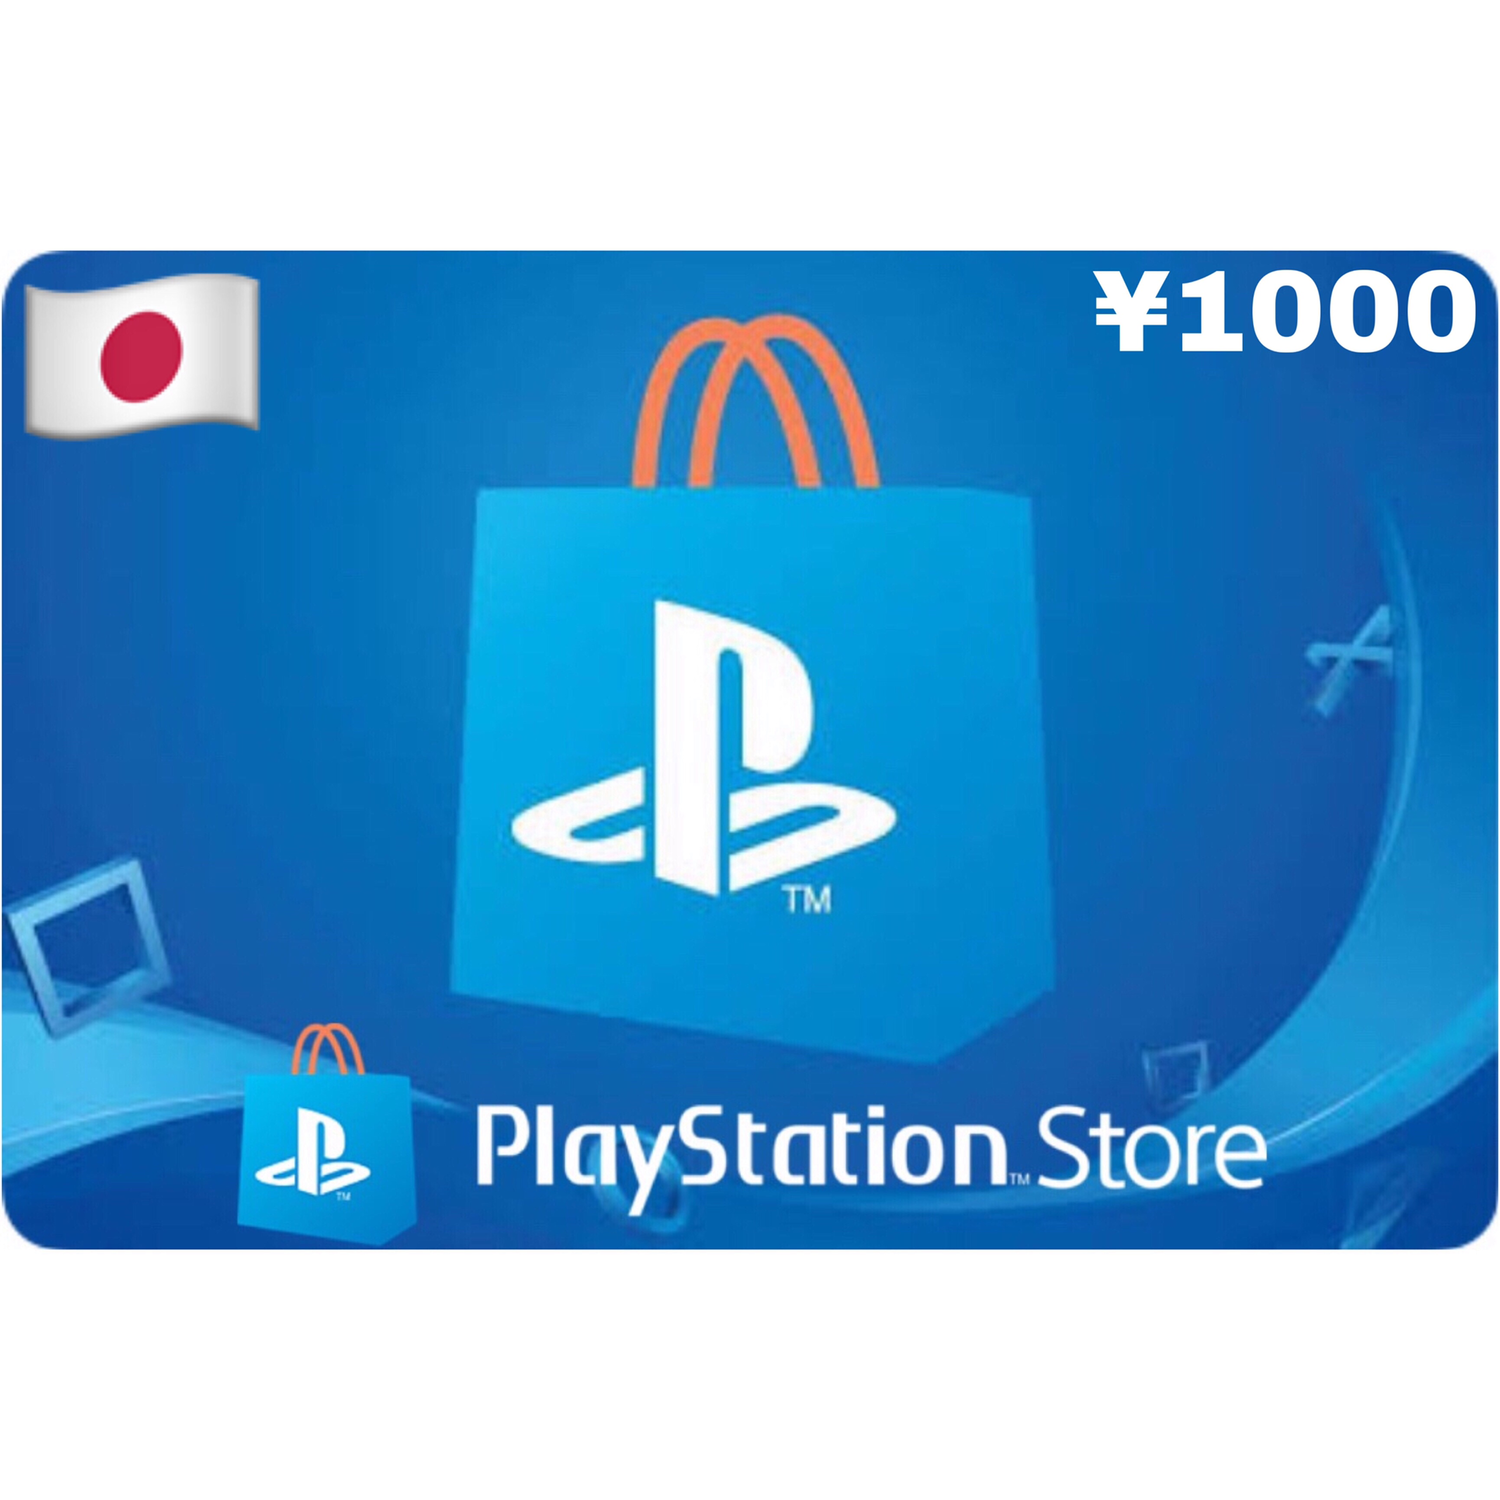 Playstation (PSN Card) Japan ¥1000